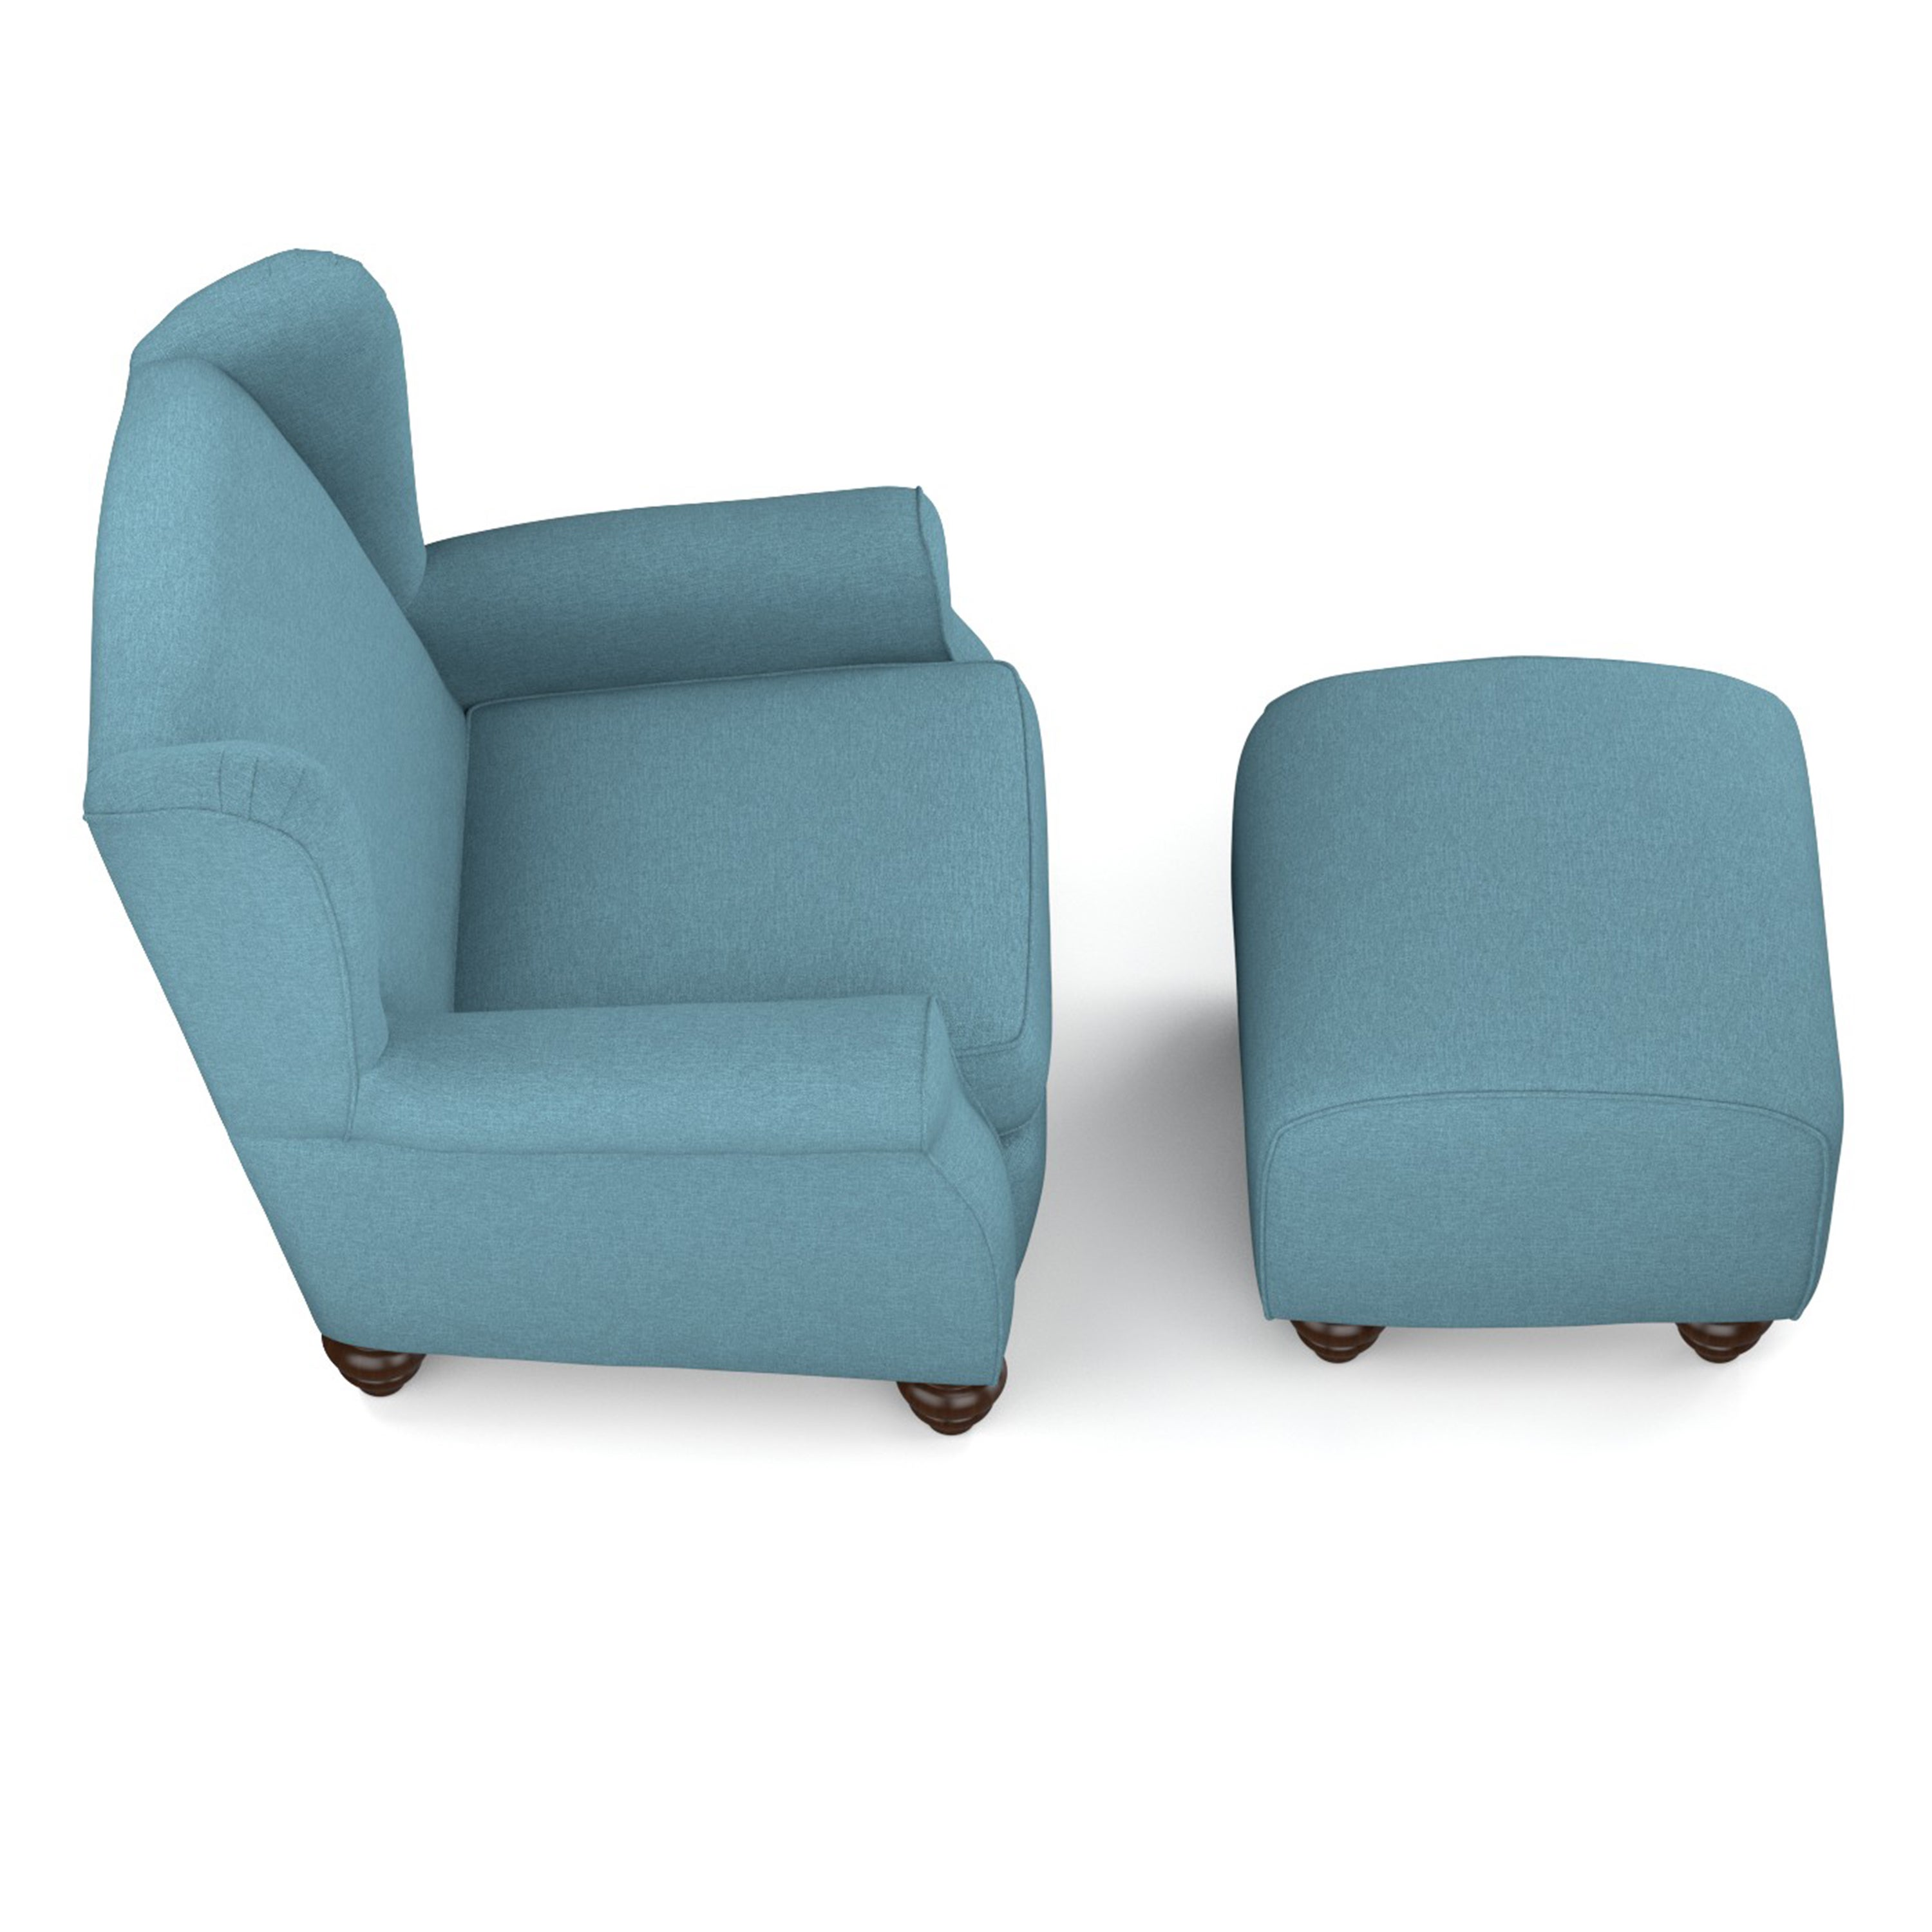 Shop Handy Living Hana Caribbean Blue Linen Wingback Chair And Ottoman Set    On Sale   Free Shipping Today   Overstock.com   10634497